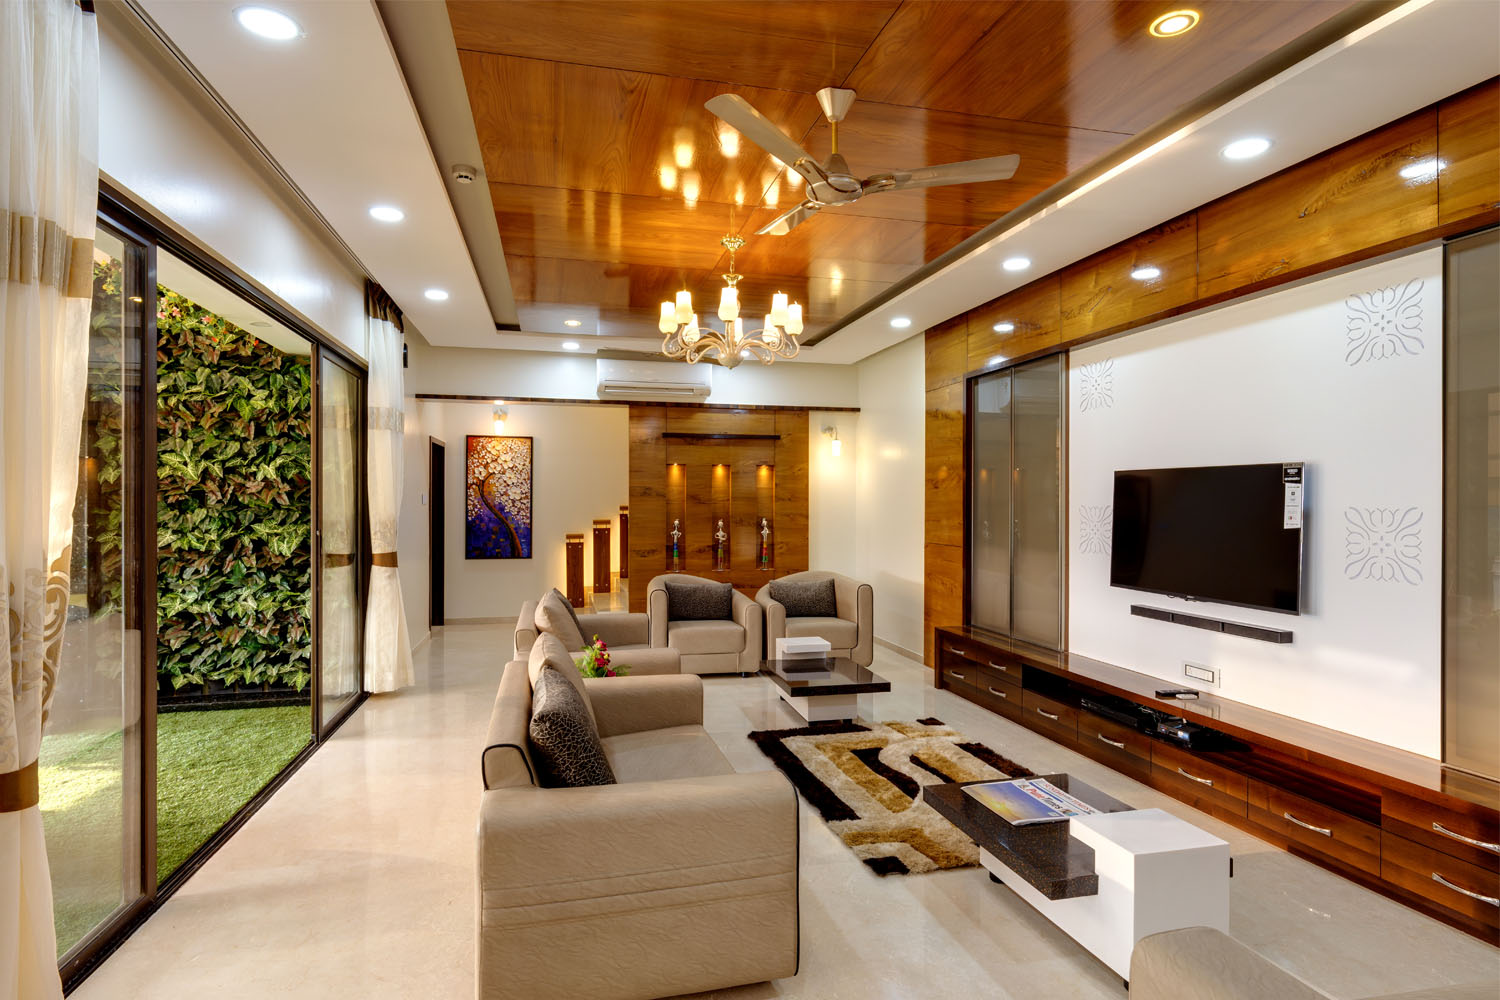 Best interior designer pune nerlekar interior designing for Room interior design images